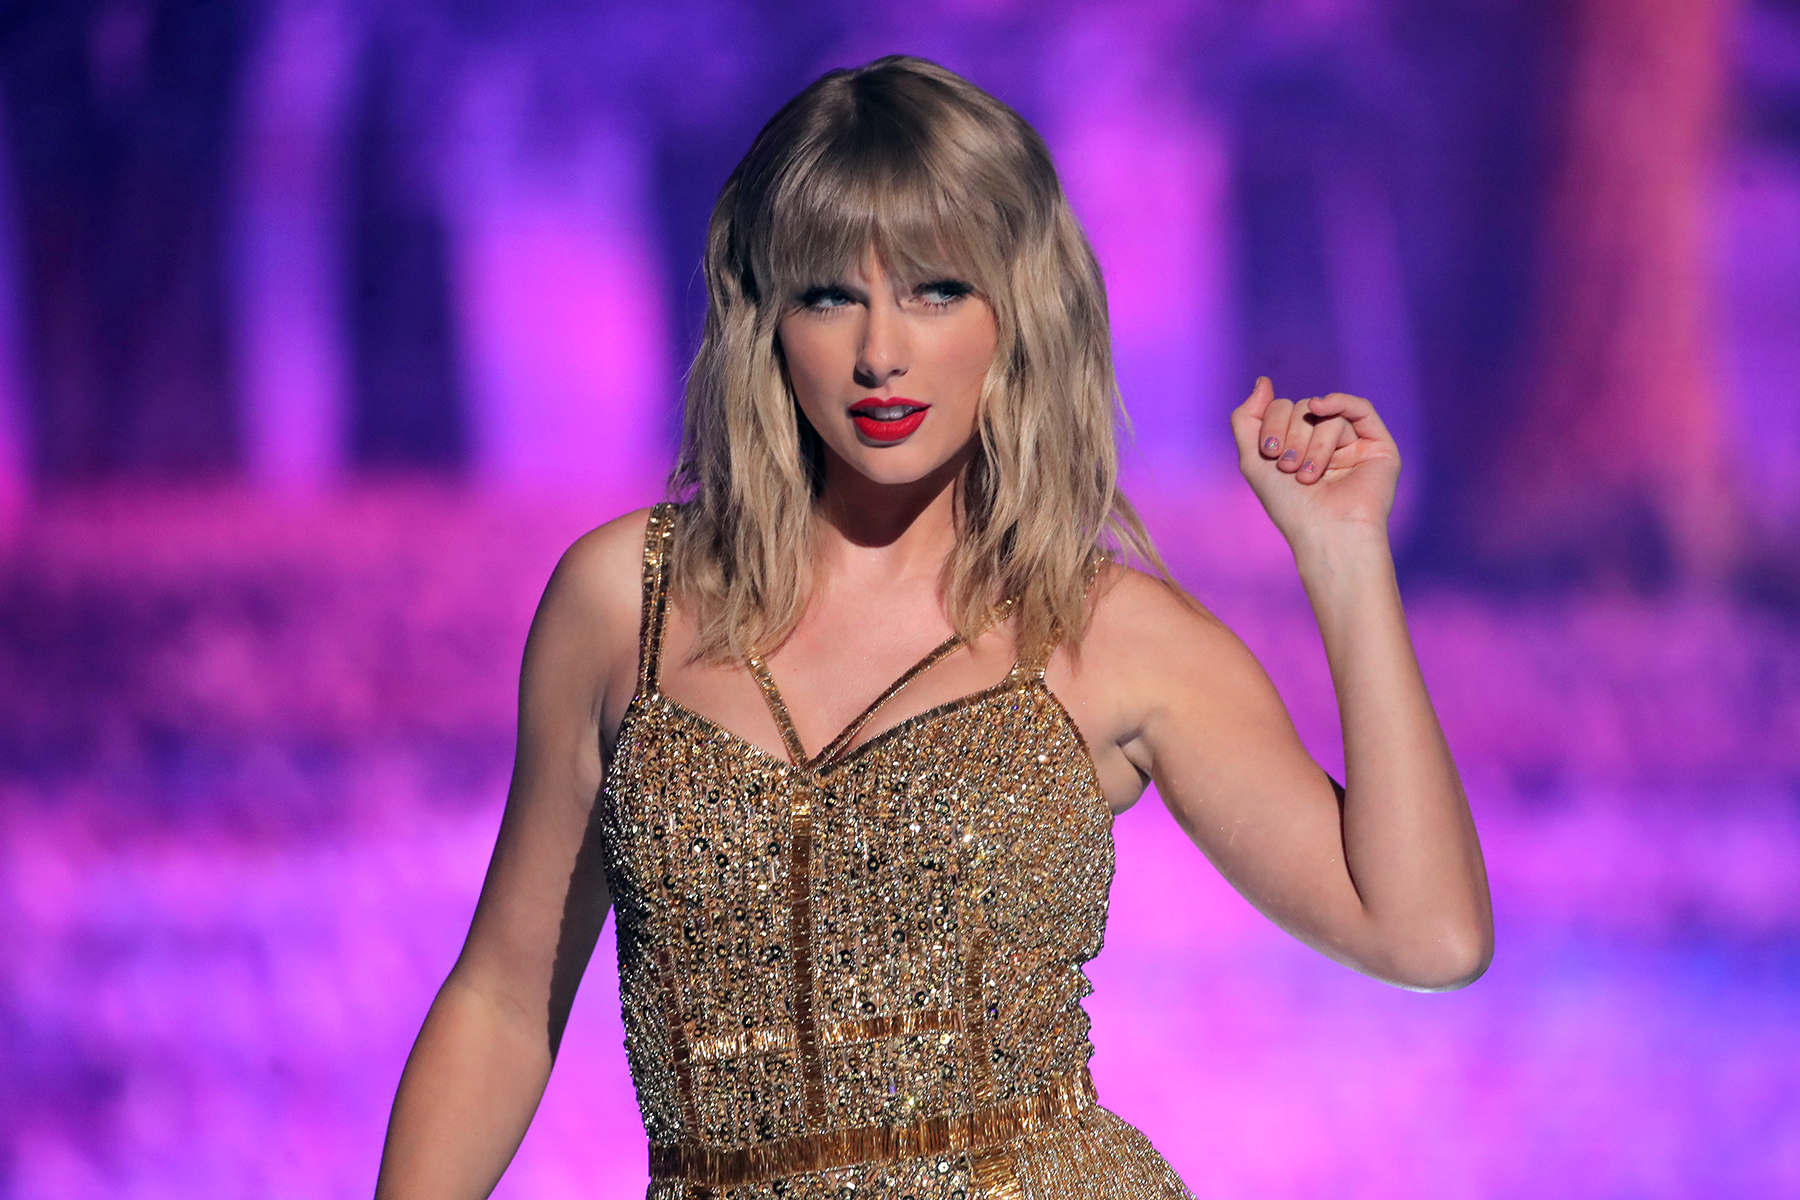 Taylor Swift Cancels All 2020 Tour Dates Due to Coronavirus - Rolling Stone